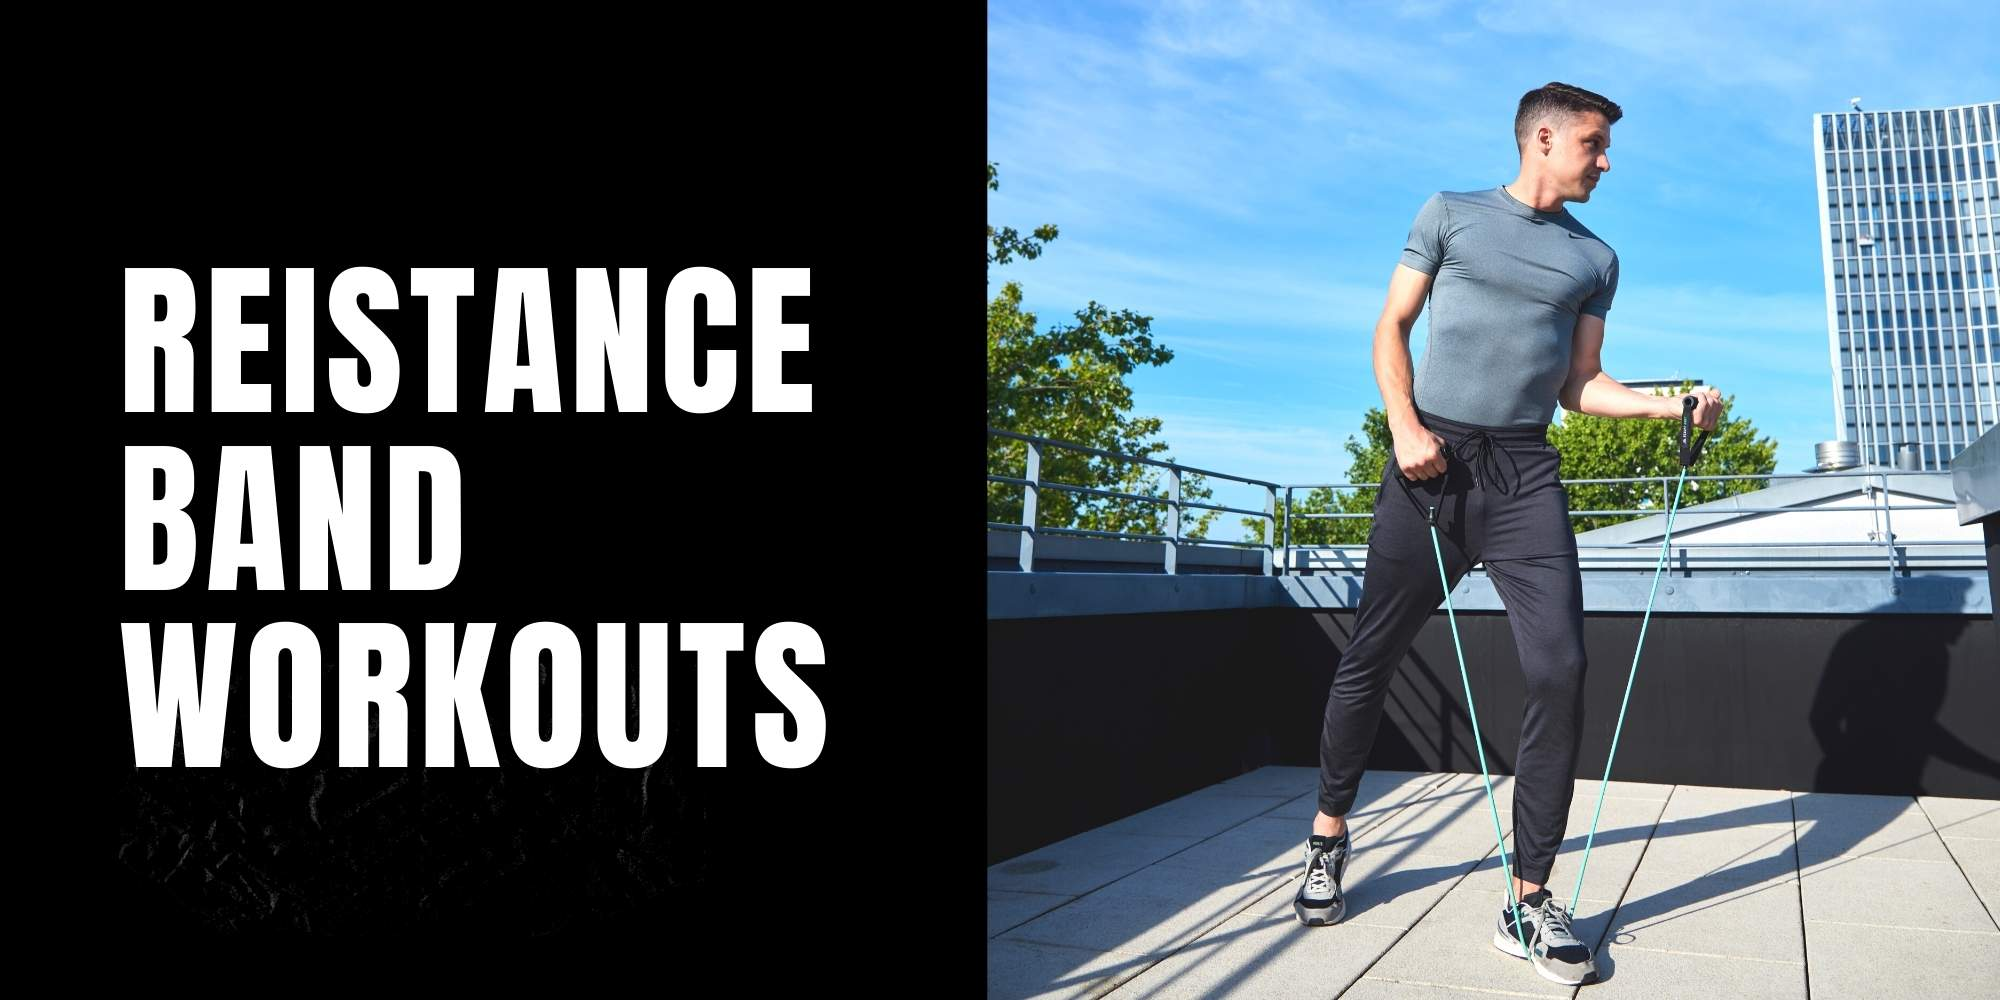 reistance band workouts